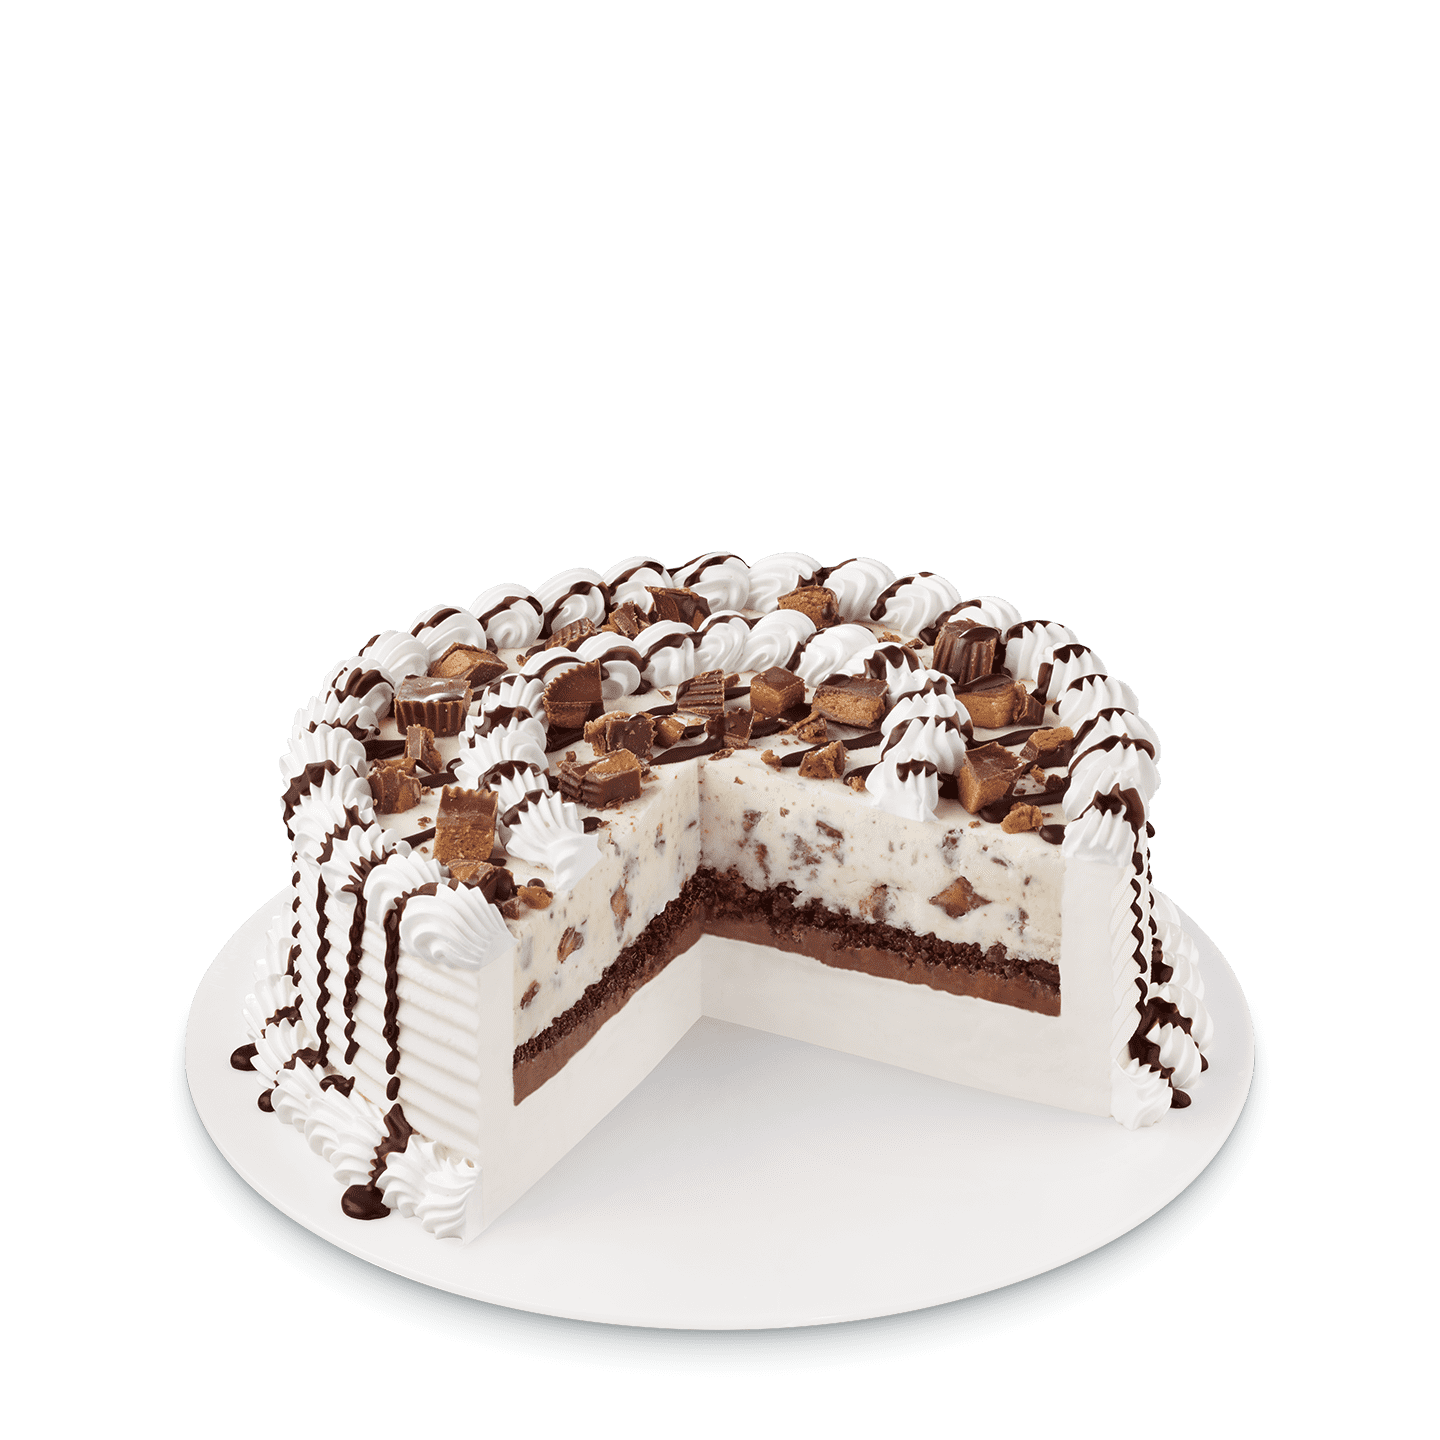 Reese S Peanut Butter Cups Blizzard Cake Dairy Queen Menu